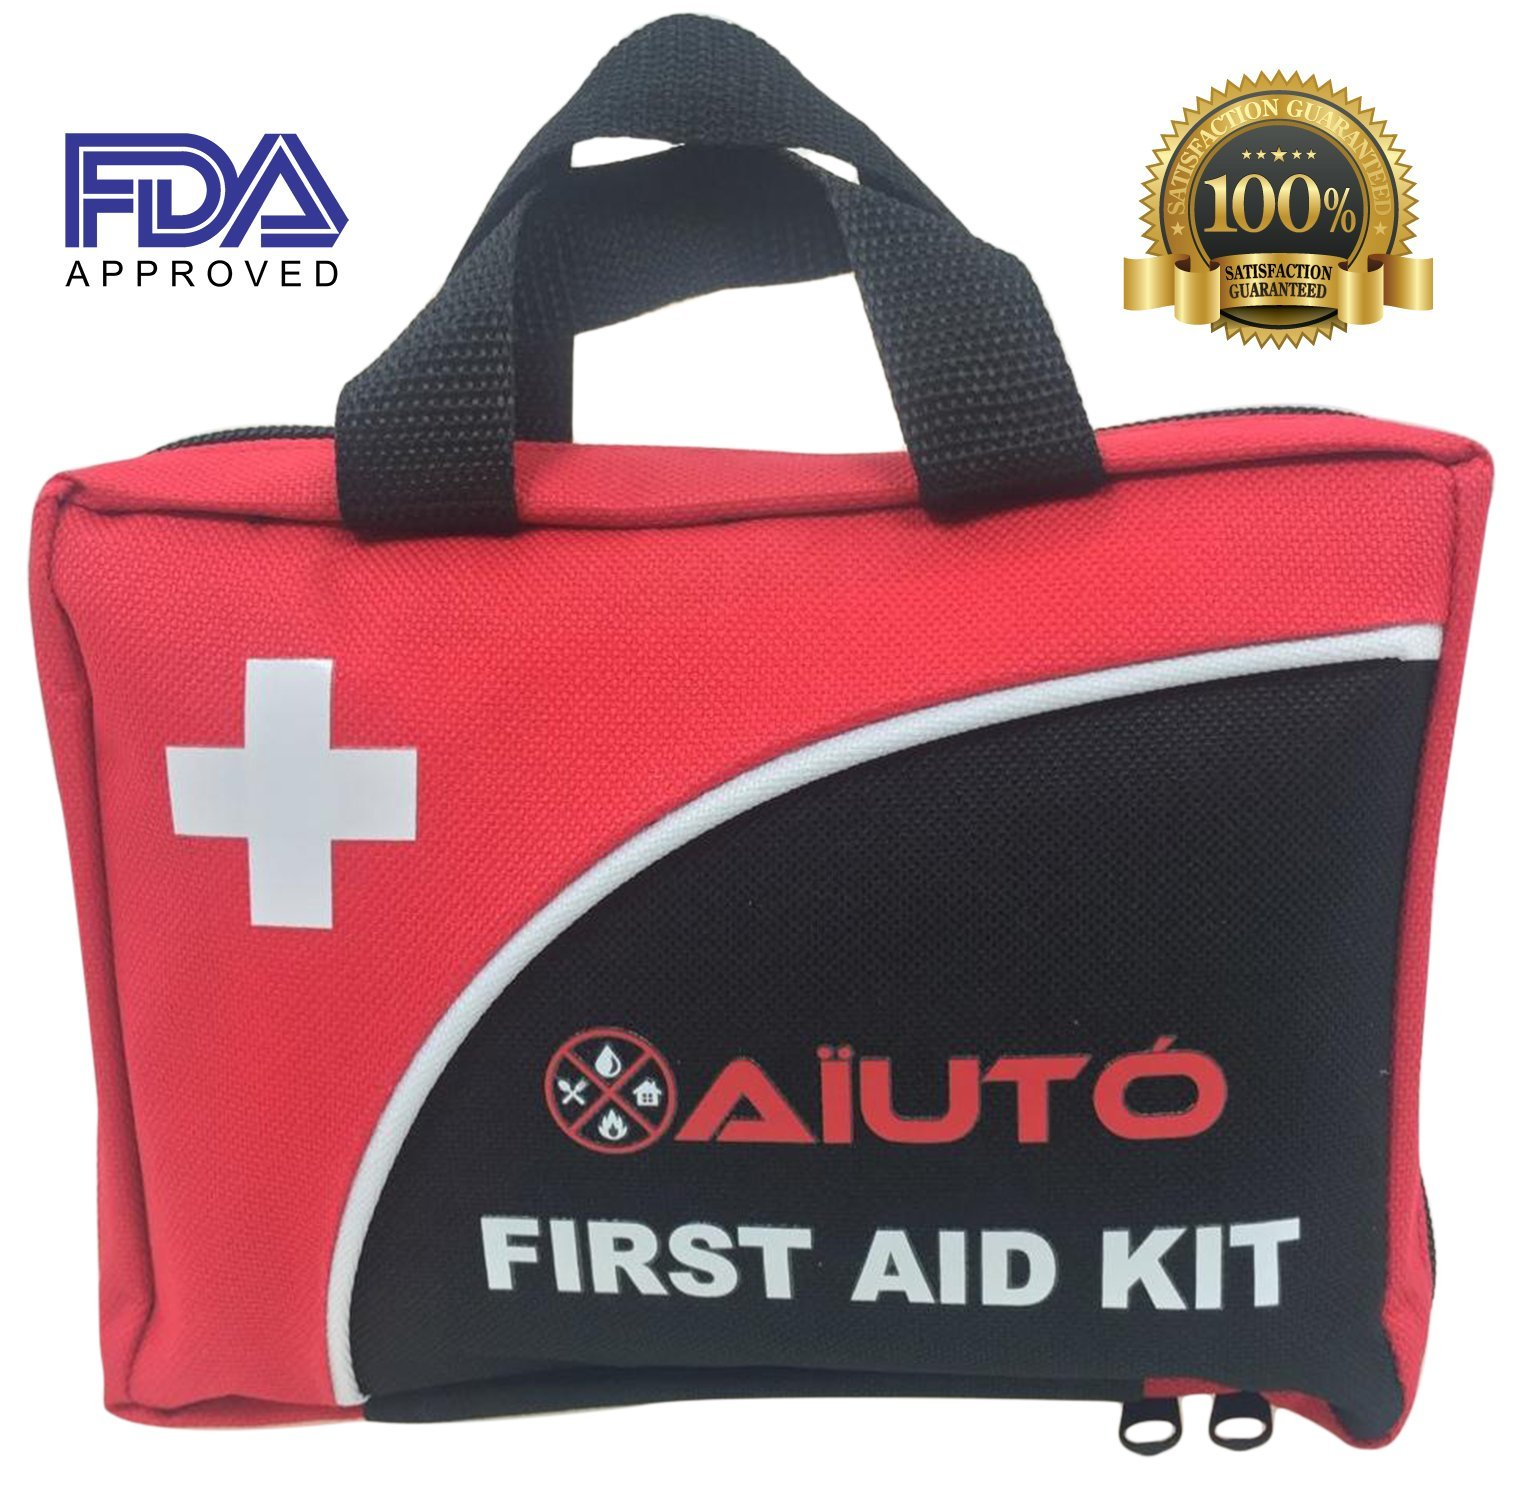 2-in-1 First Aid Kit (120 Piece) + Bonus 32-Piece Mini First Aid Kit: Compact, Lightweight for Emergencies at Home, Outdoors, Car, Camping, Workplace, Hiking & Survival. by Aïutó